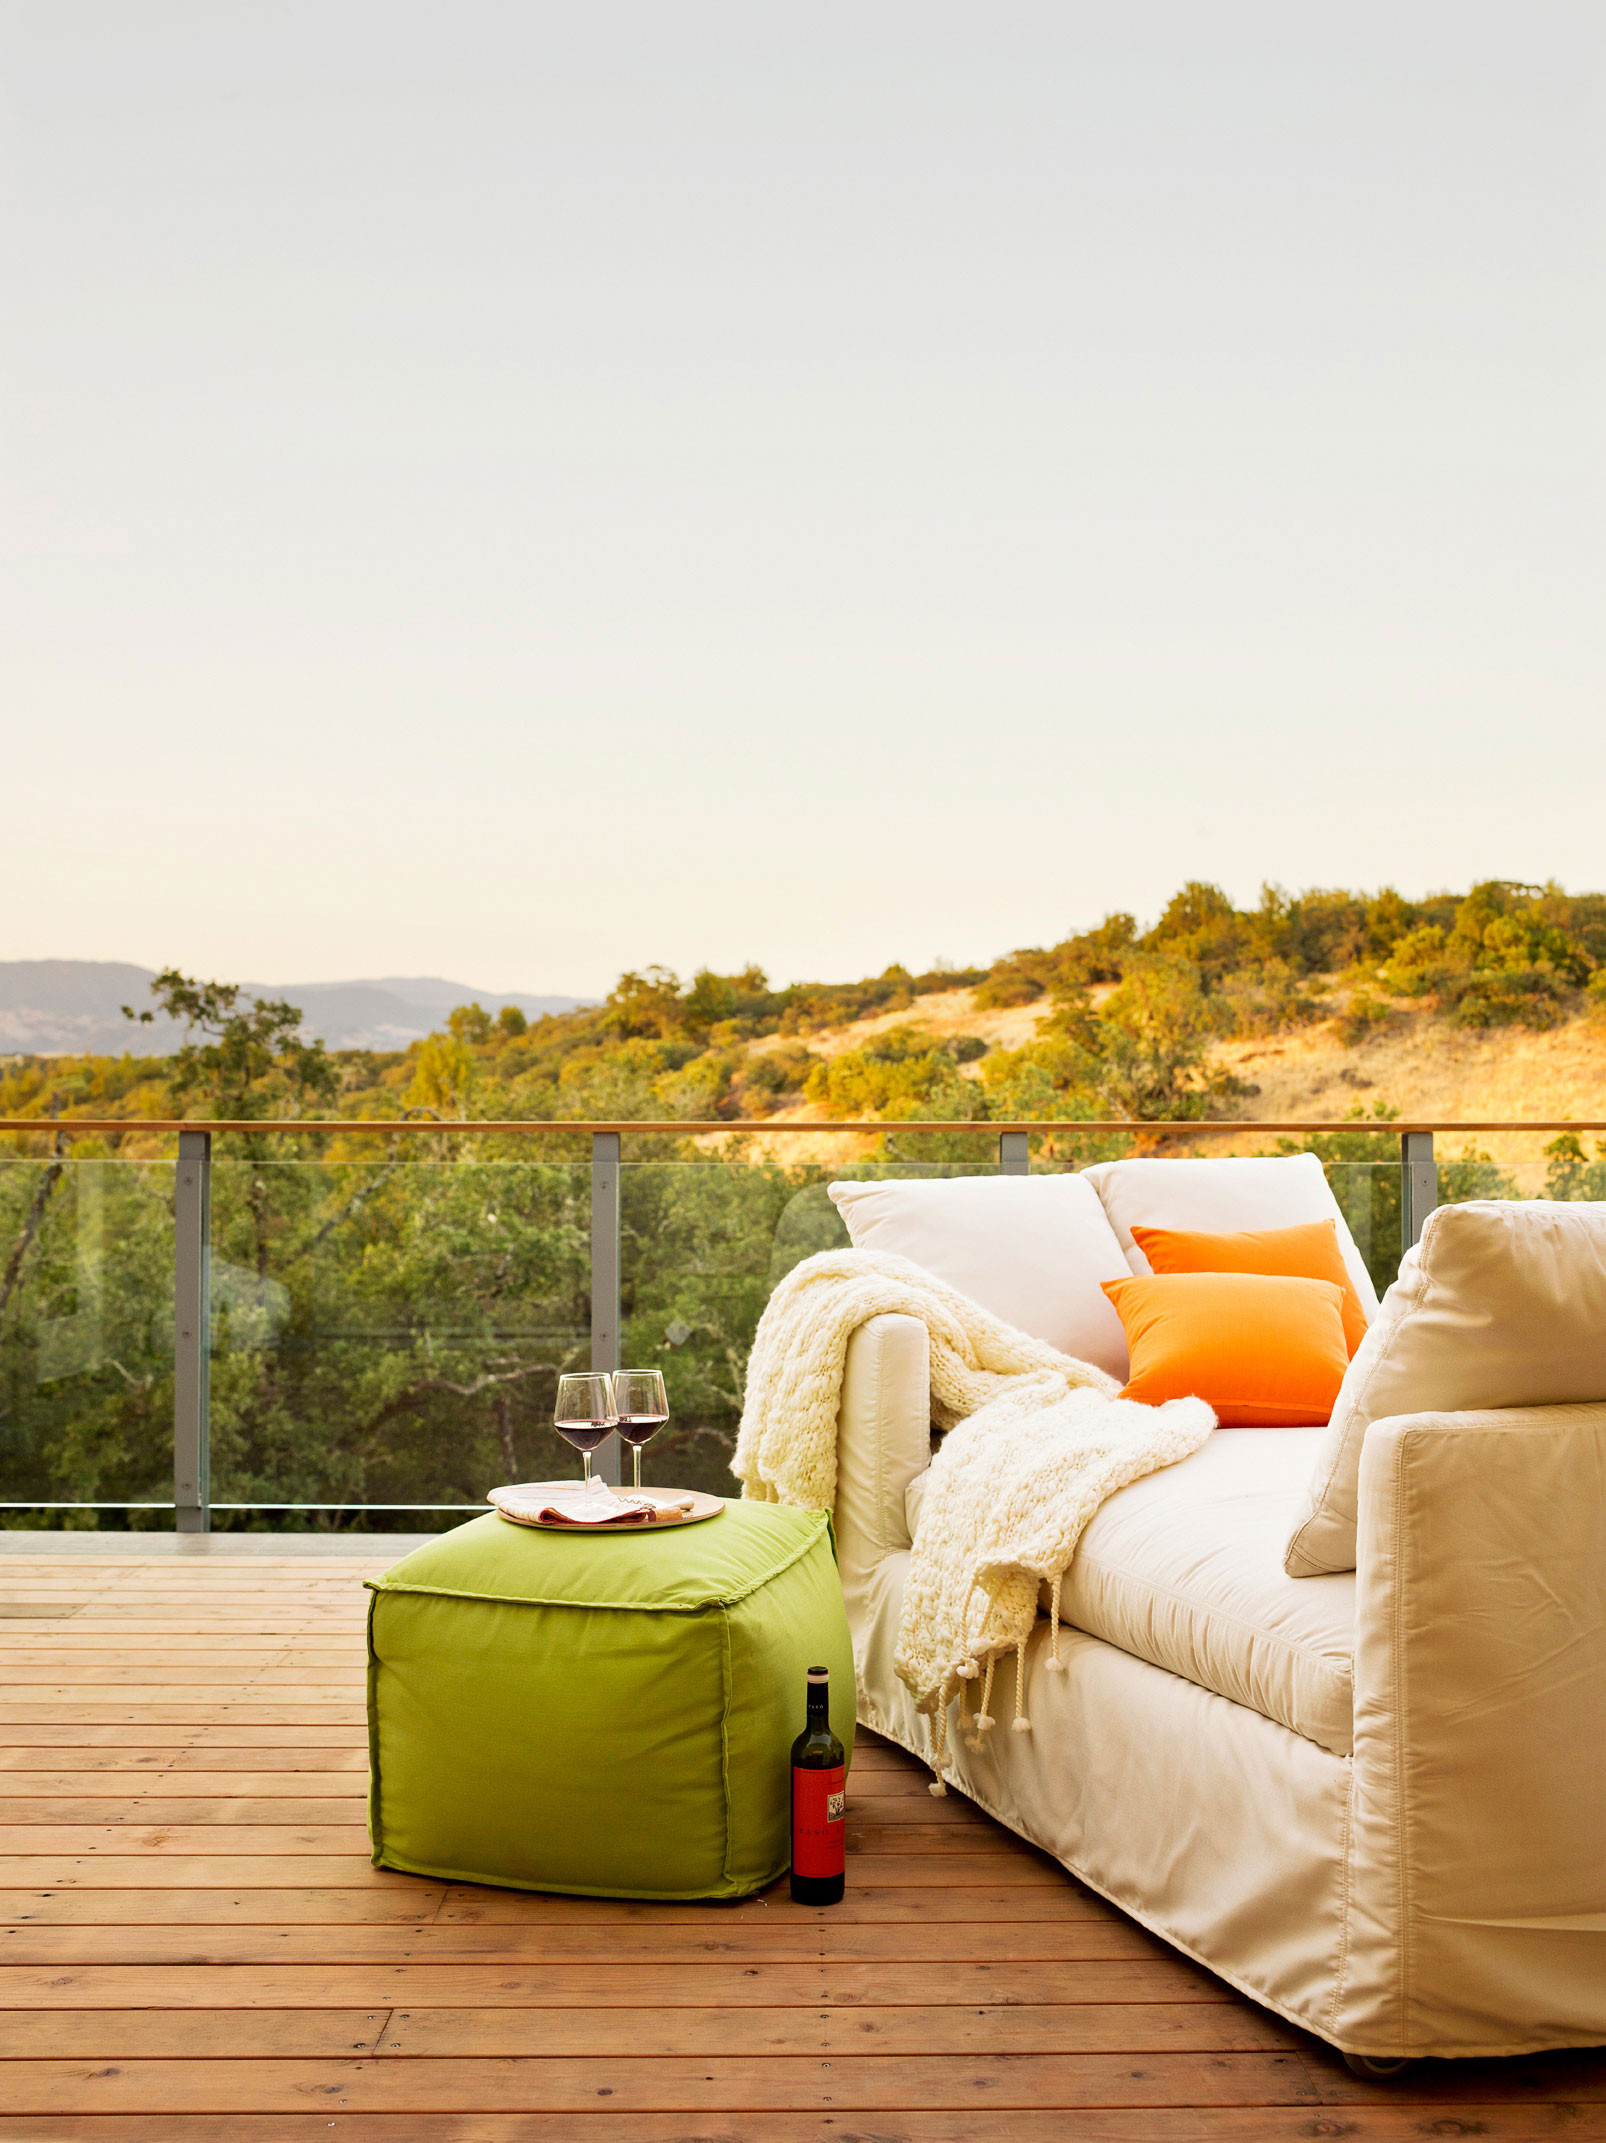 Breezehouse 2012: Tour the Outdoor Spaces